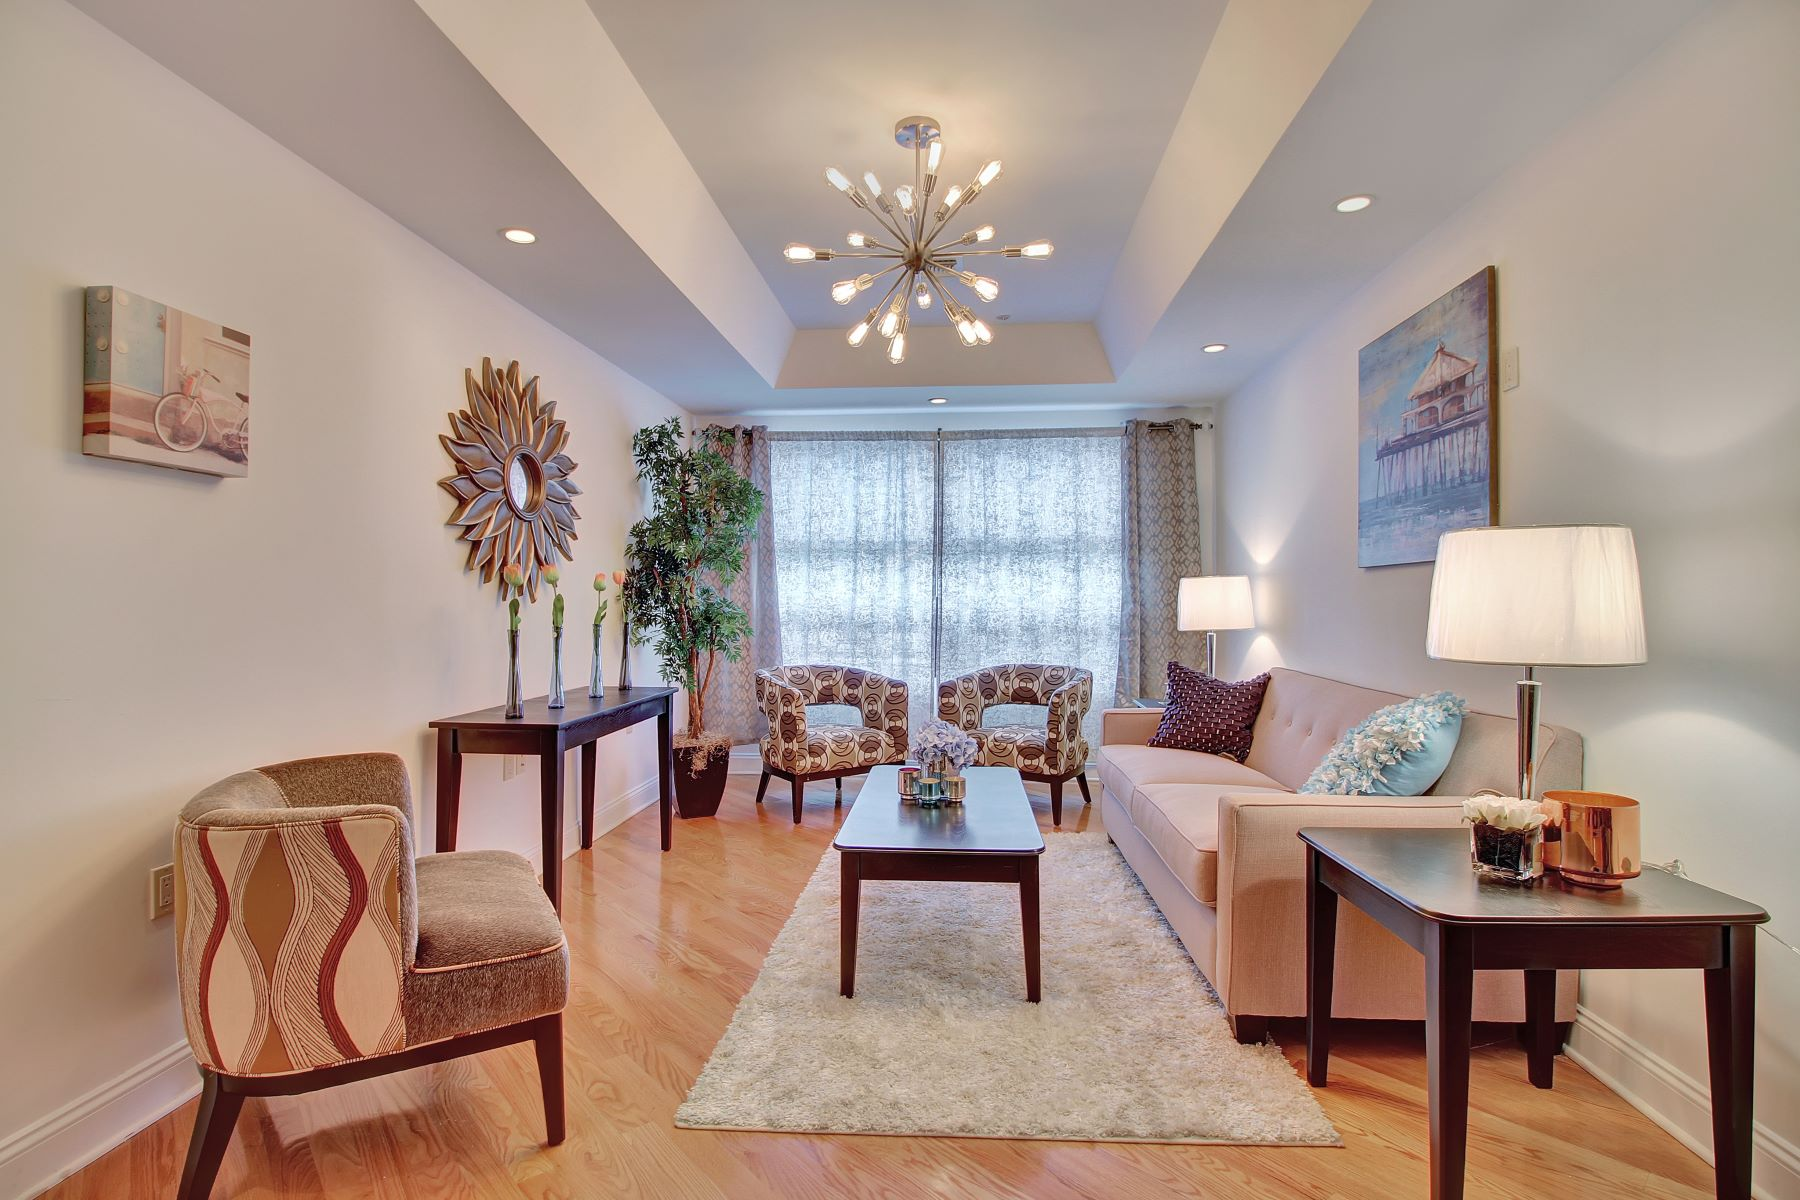 Condominium for Sale at Awesome layout on this 1800 square feet of glorious new ground up construction 4108 Kennedy BLVD #1 Union City, New Jersey 07087 United States